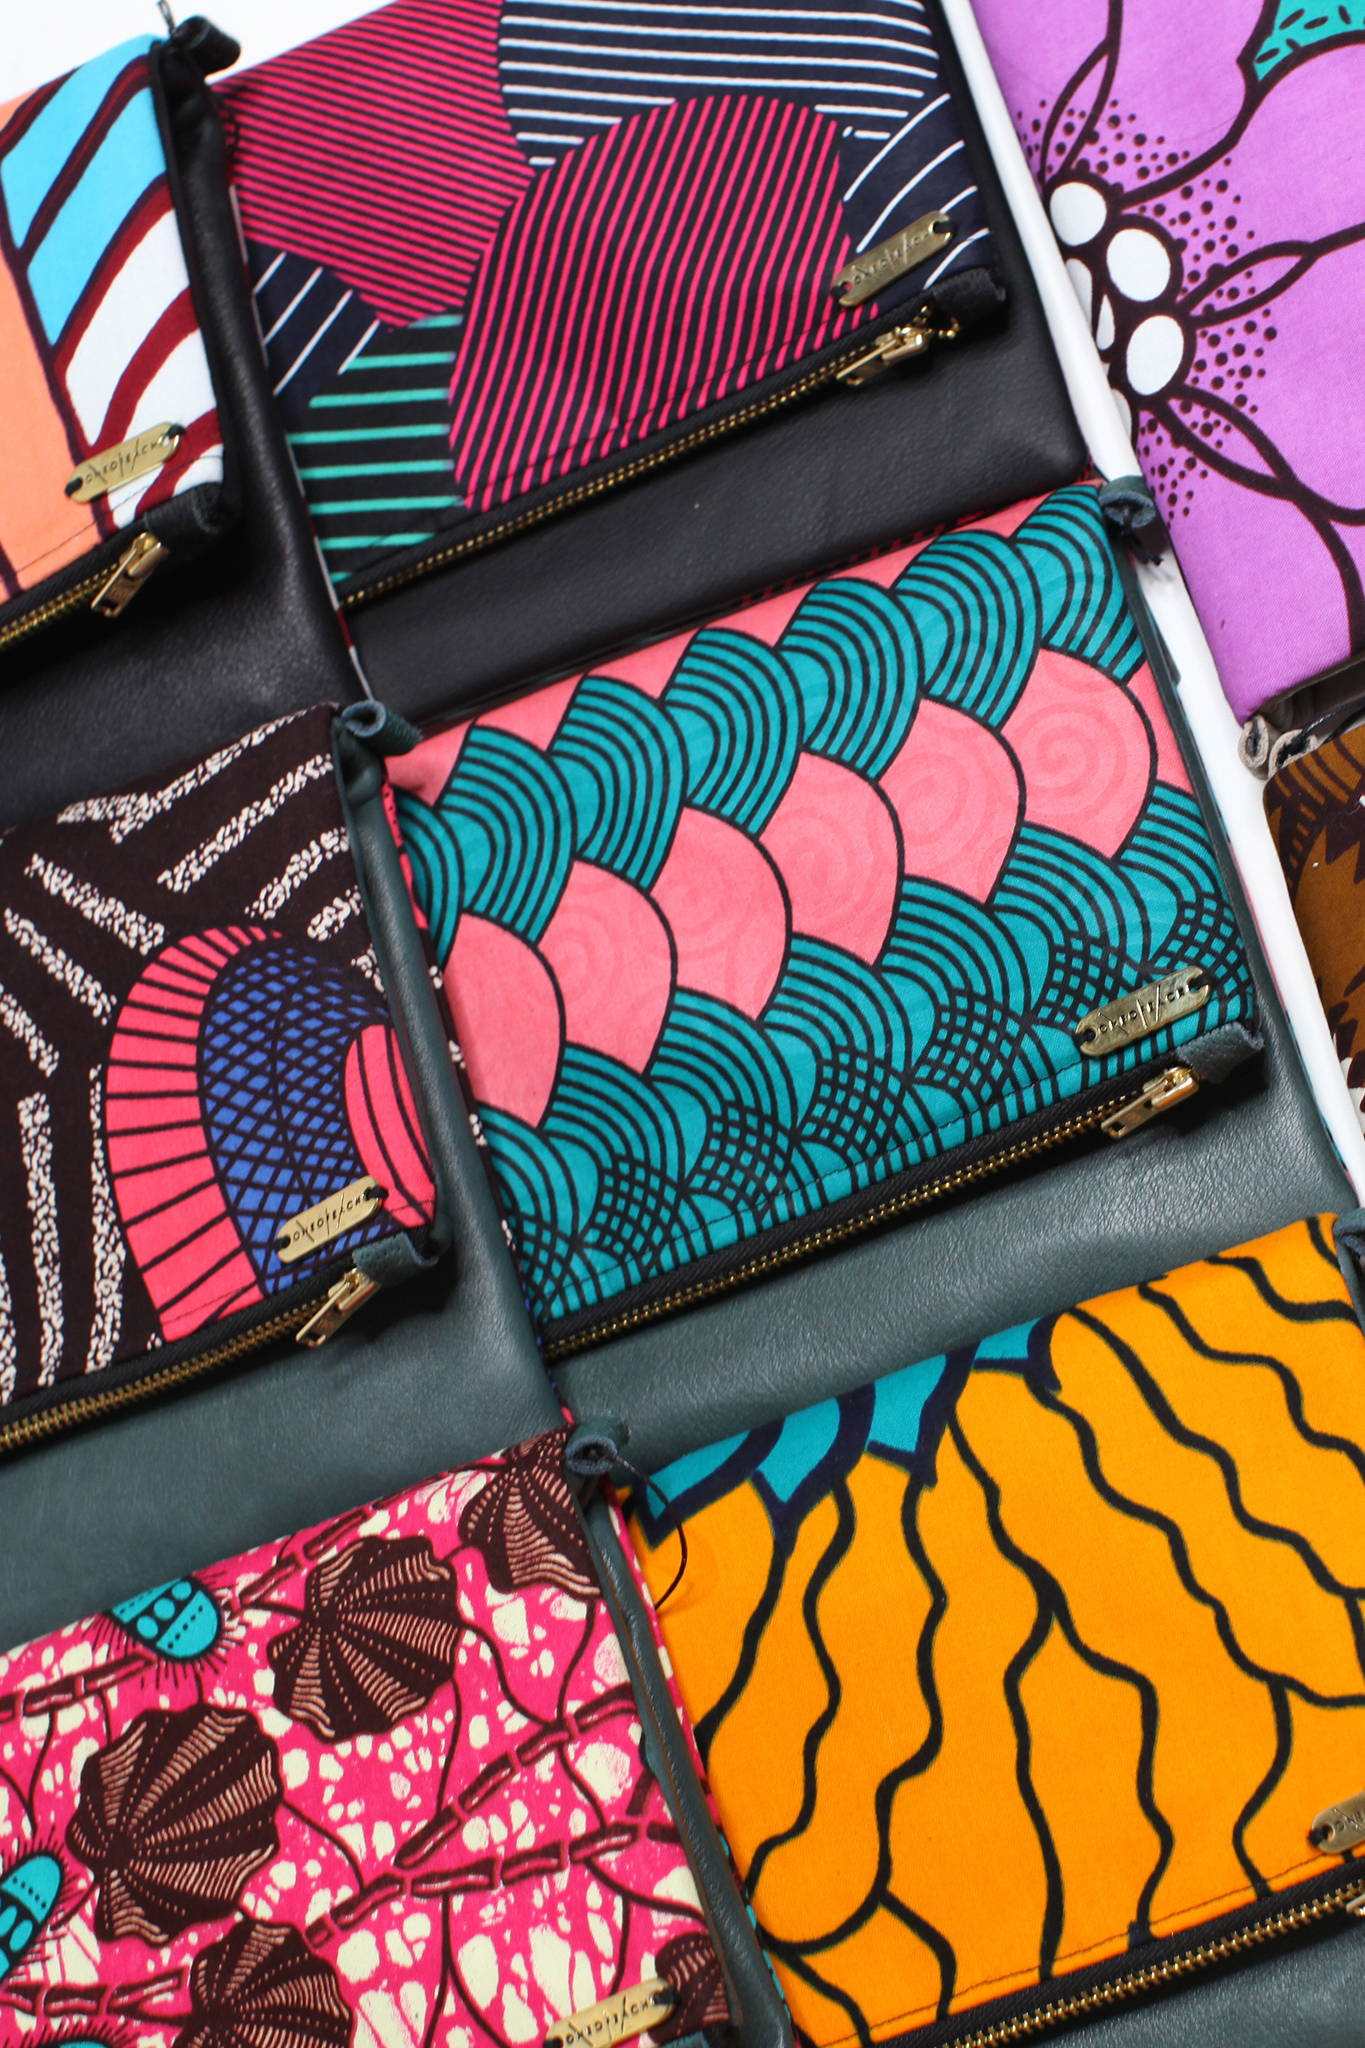 AFRICAN PRINT LEATHER CLUTCHES Colorful Ankara and Seshweshwe African-inspired handbags